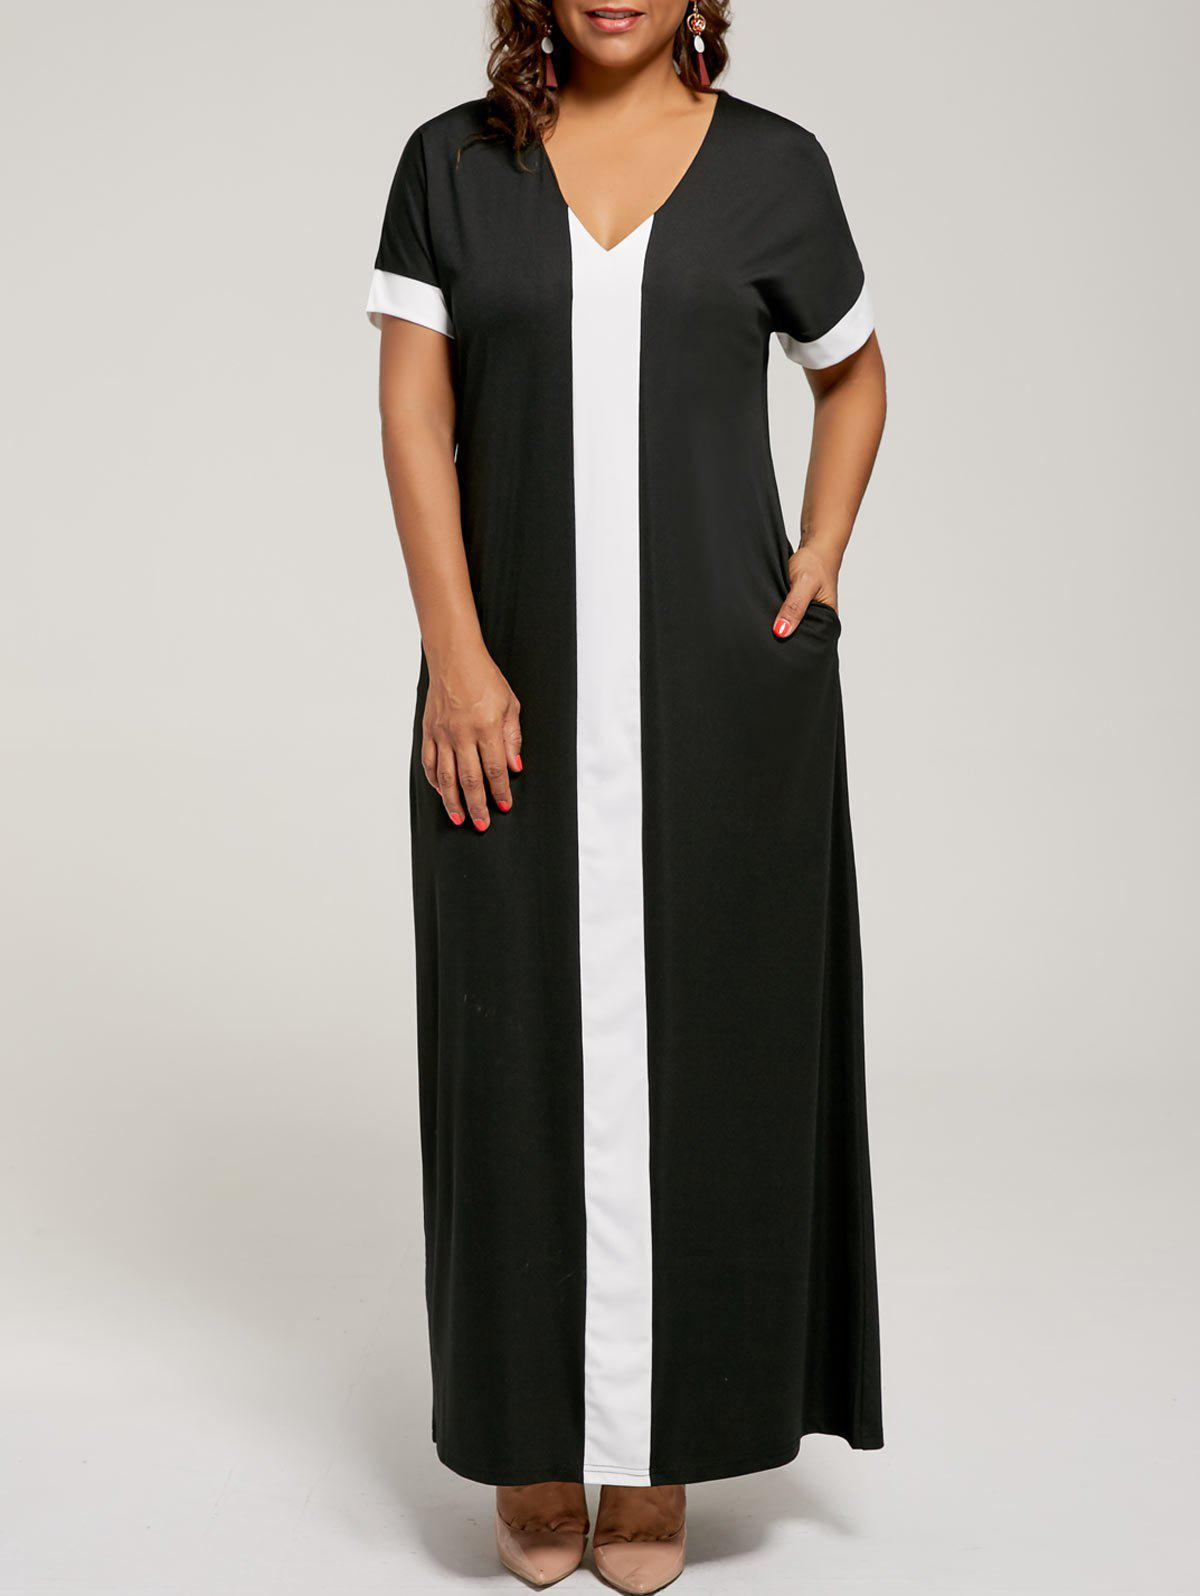 Plus Size Maxi Two Tone Short Sleeve Shift DressWOMEN<br><br>Size: 5XL; Color: BLACK; Style: Brief; Material: Cotton Blend,Polyester; Silhouette: Straight; Dresses Length: Ankle-Length; Neckline: Round Collar; Sleeve Length: Short Sleeves; Pattern Type: Others; With Belt: No; Season: Spring,Summer; Weight: 0.3000kg; Package Contents: 1 x Dress;